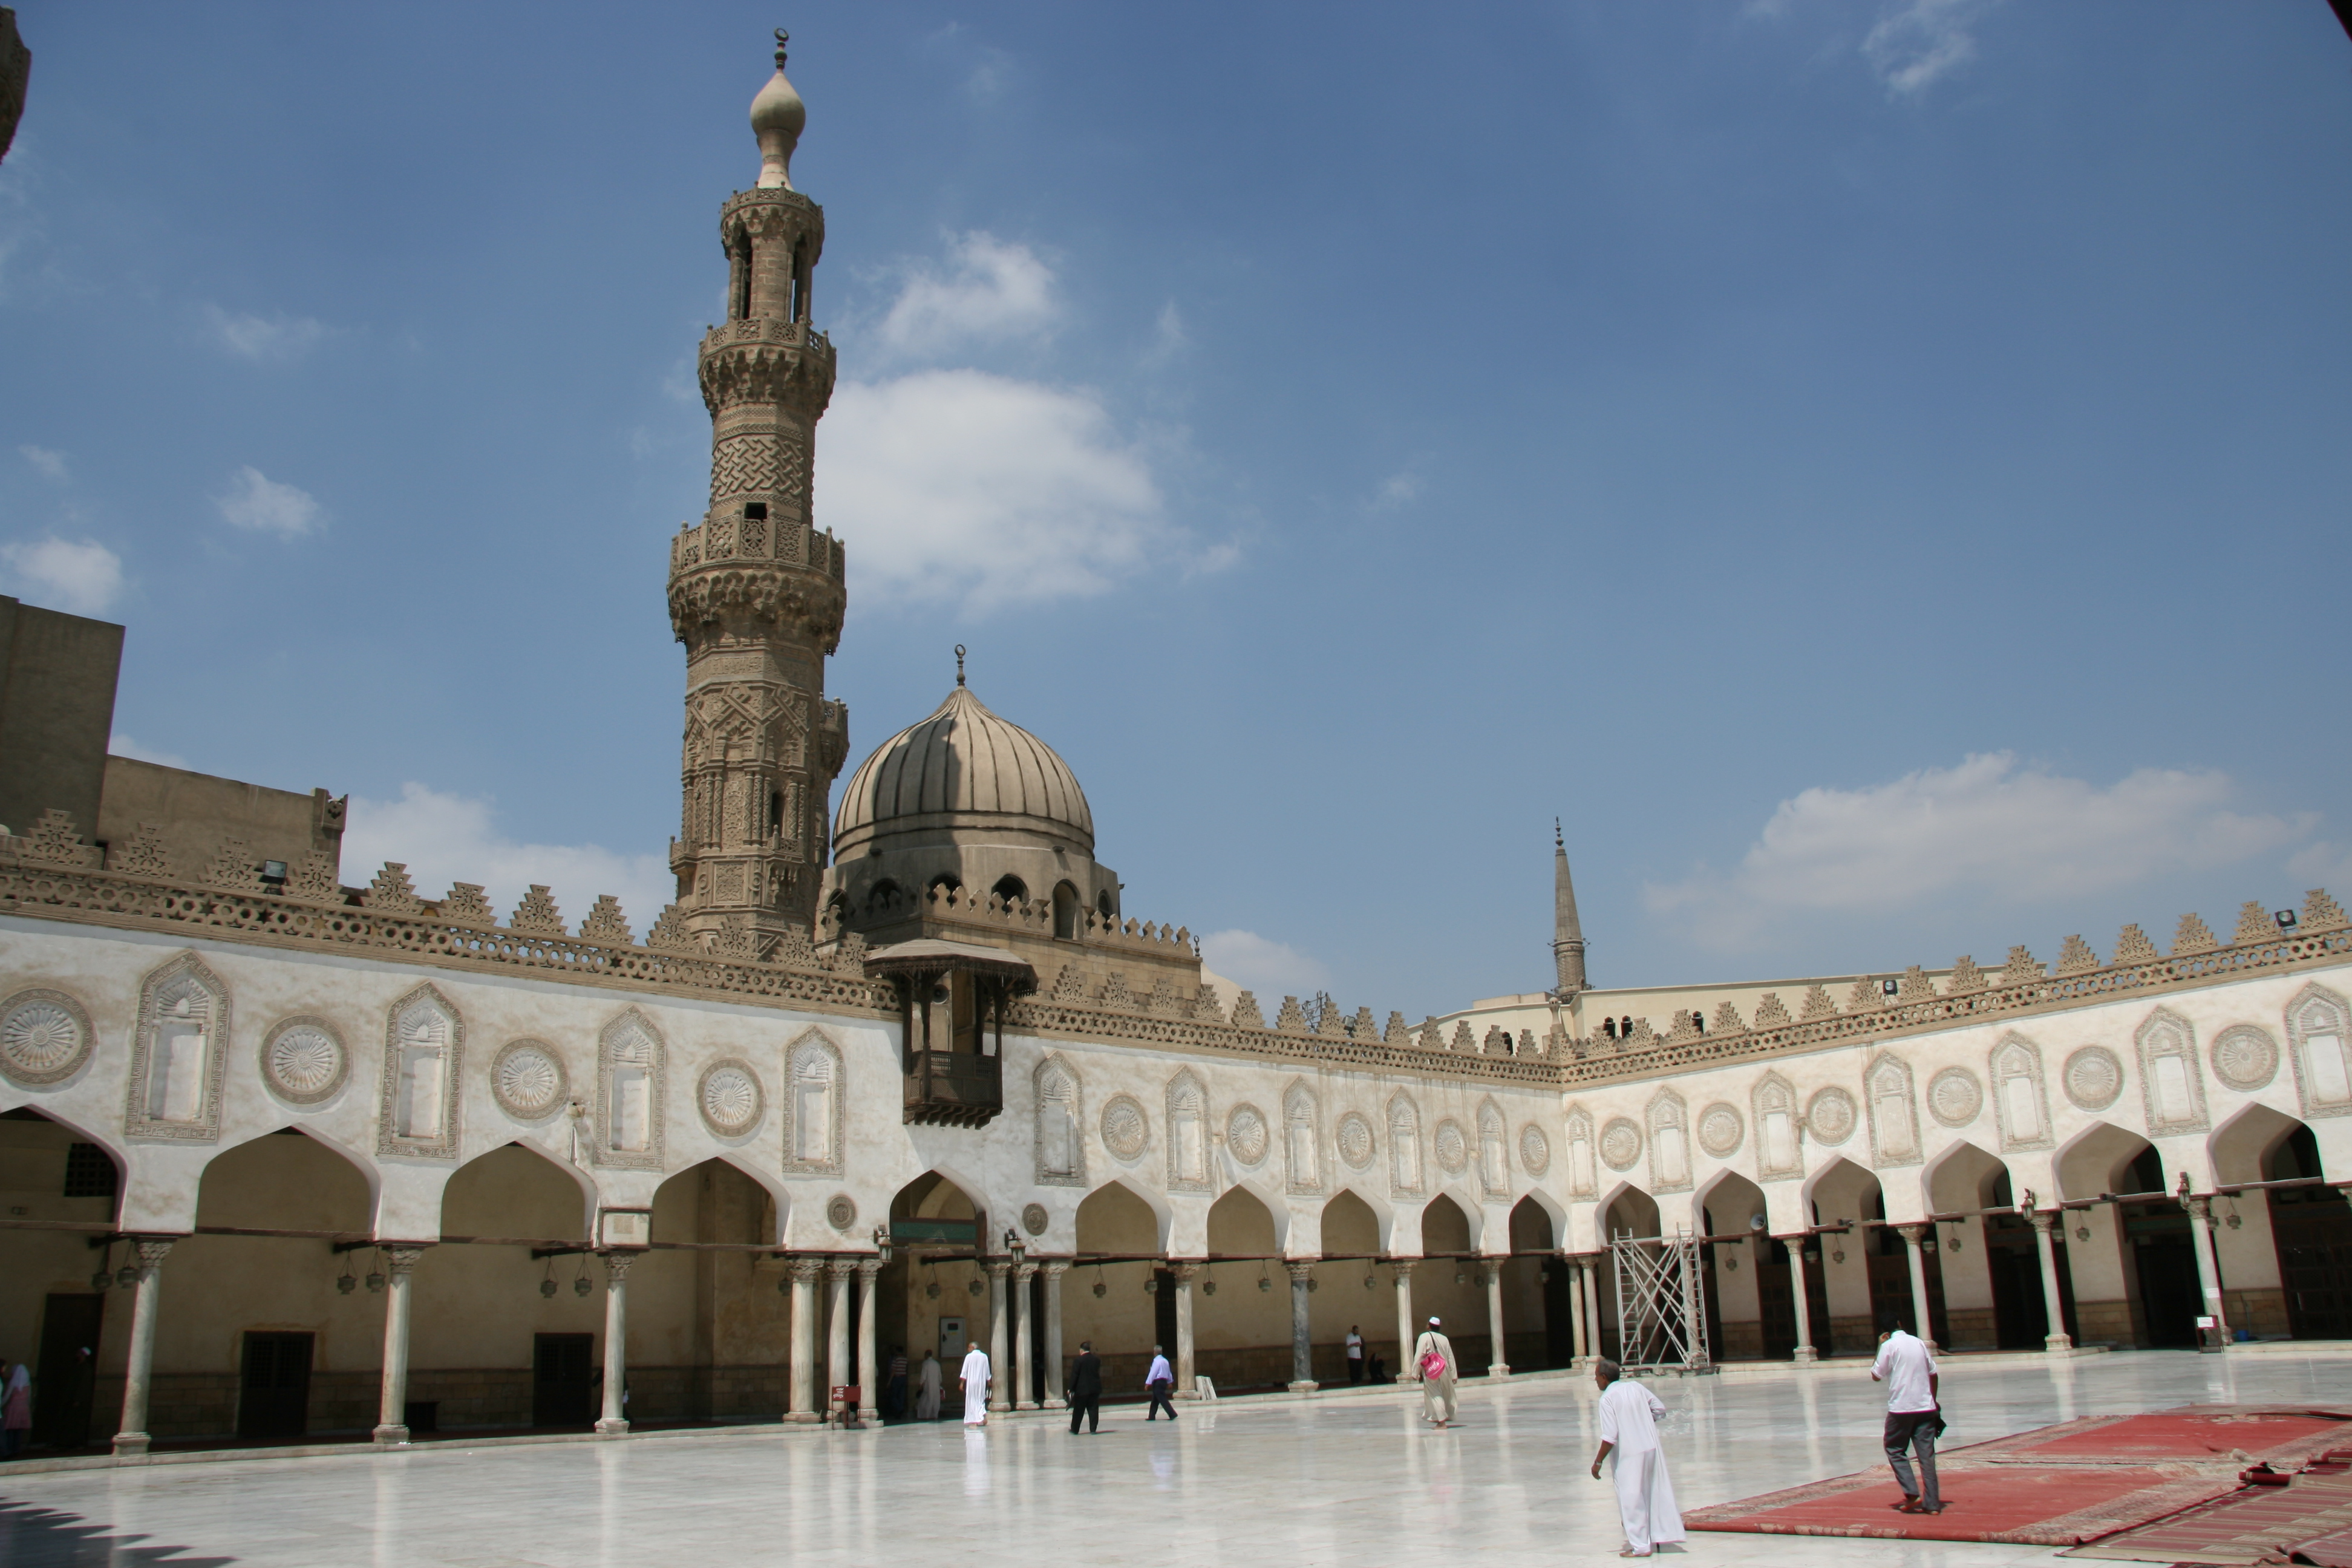 Al-Azhar Mosque (photo credit: Travel Aficionado/flickr)